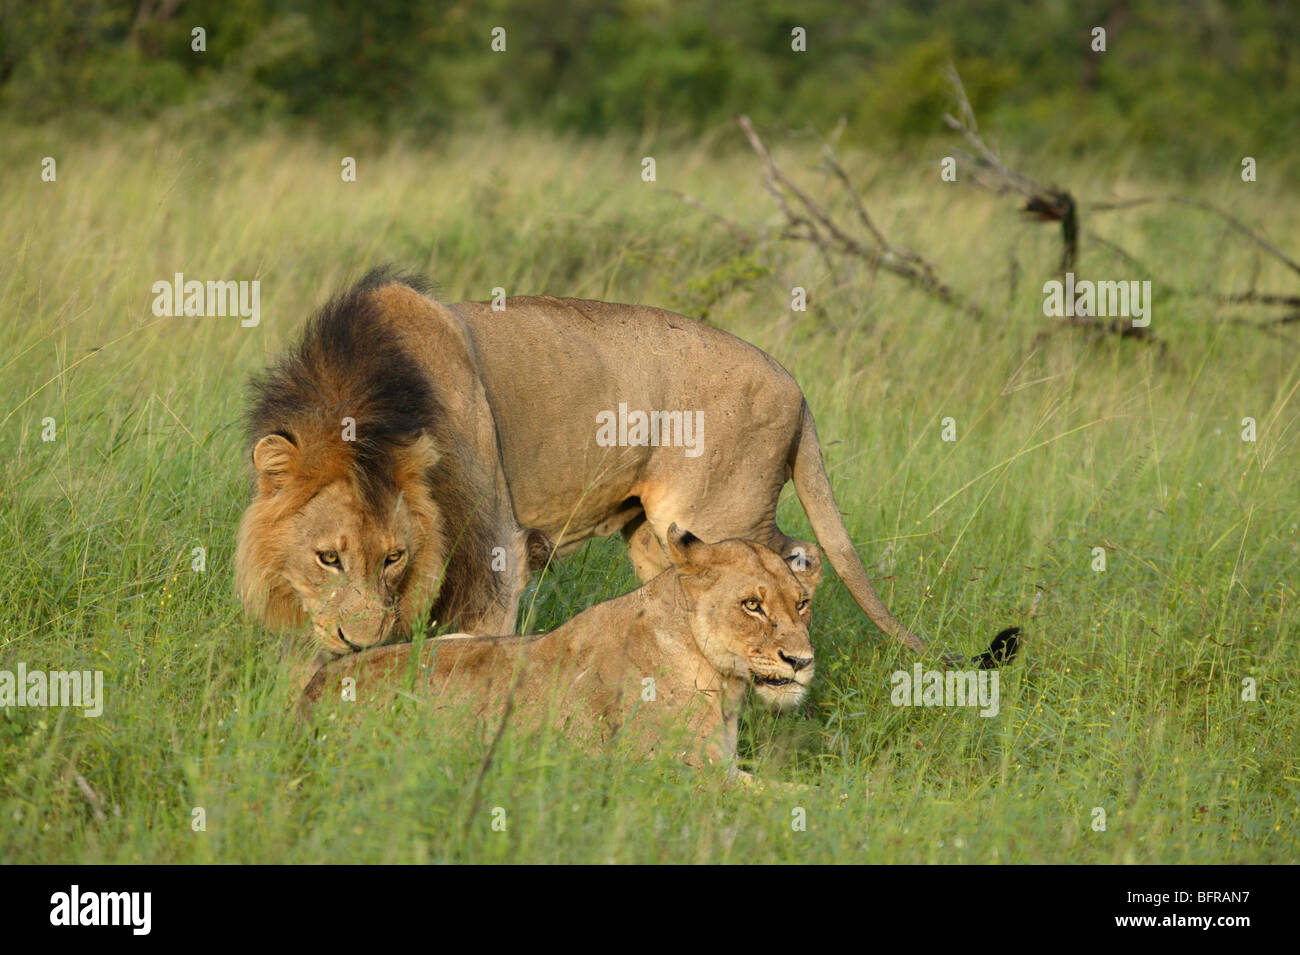 Mating pair of lions with a male sniffing to test the female's readiness to mate - Stock Image